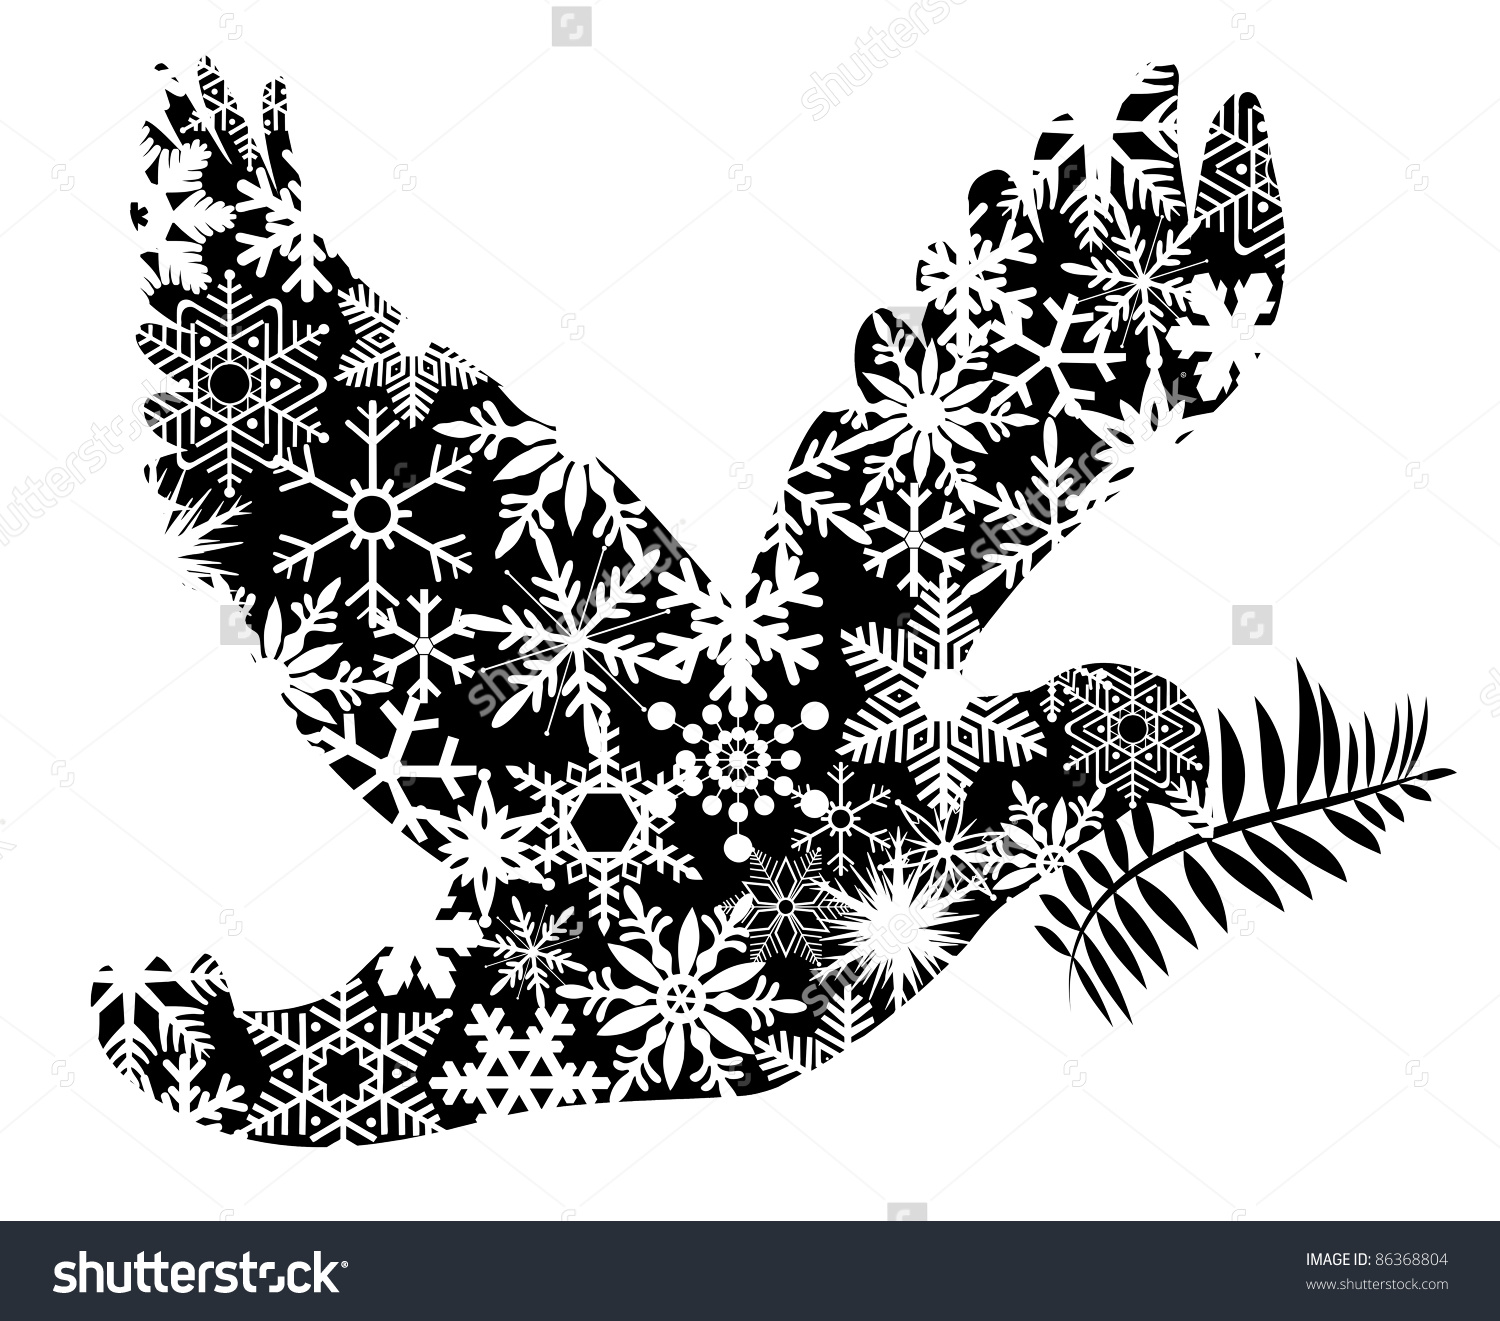 Christmas Peace Dove Silhouette Clipart Illustration Stock.